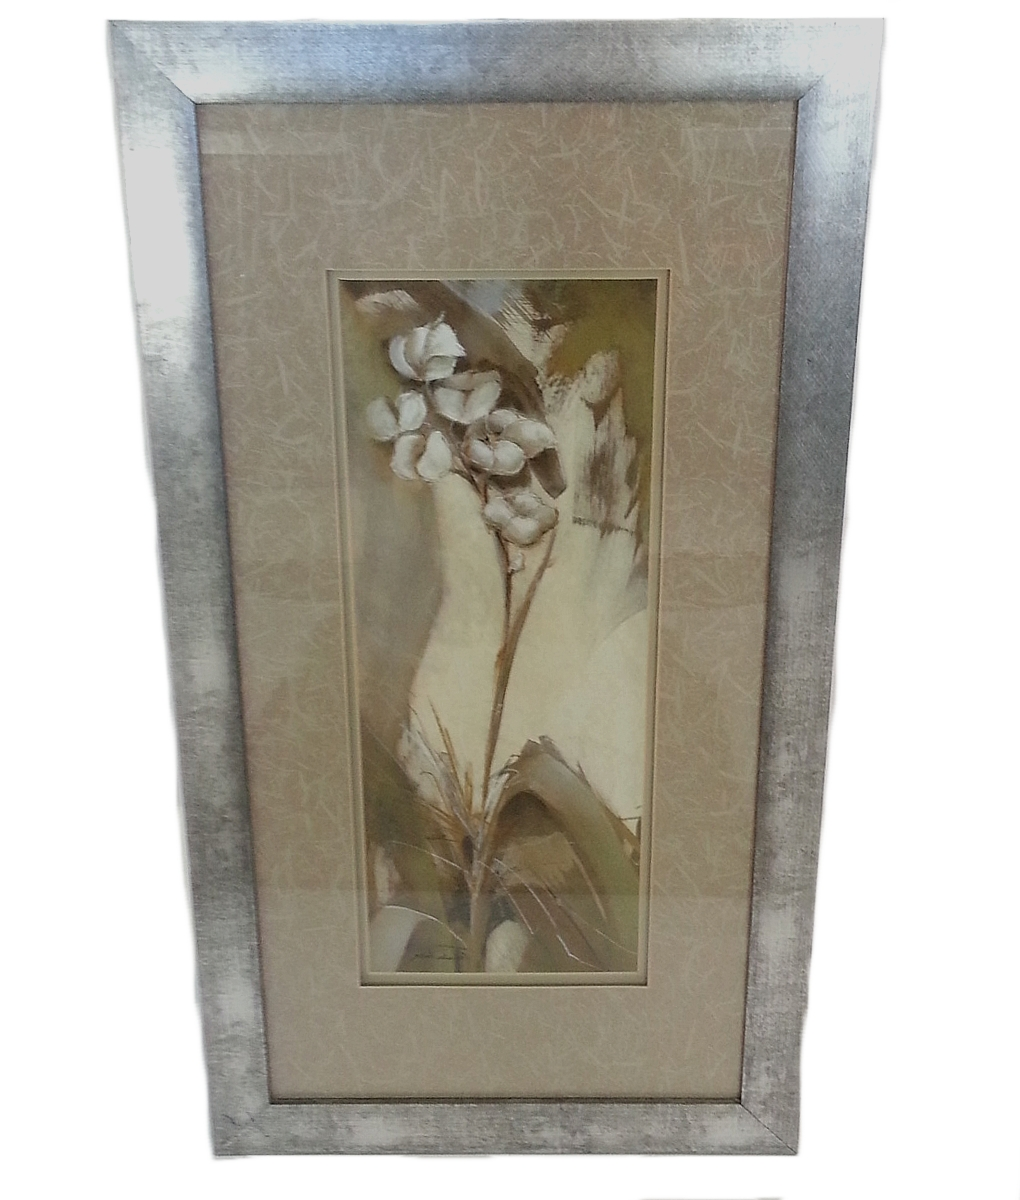 Picture Frame Wall Art Medium Flowers In A Silver Frame (Used Intended For Latest Silver Wall Art (View 9 of 20)